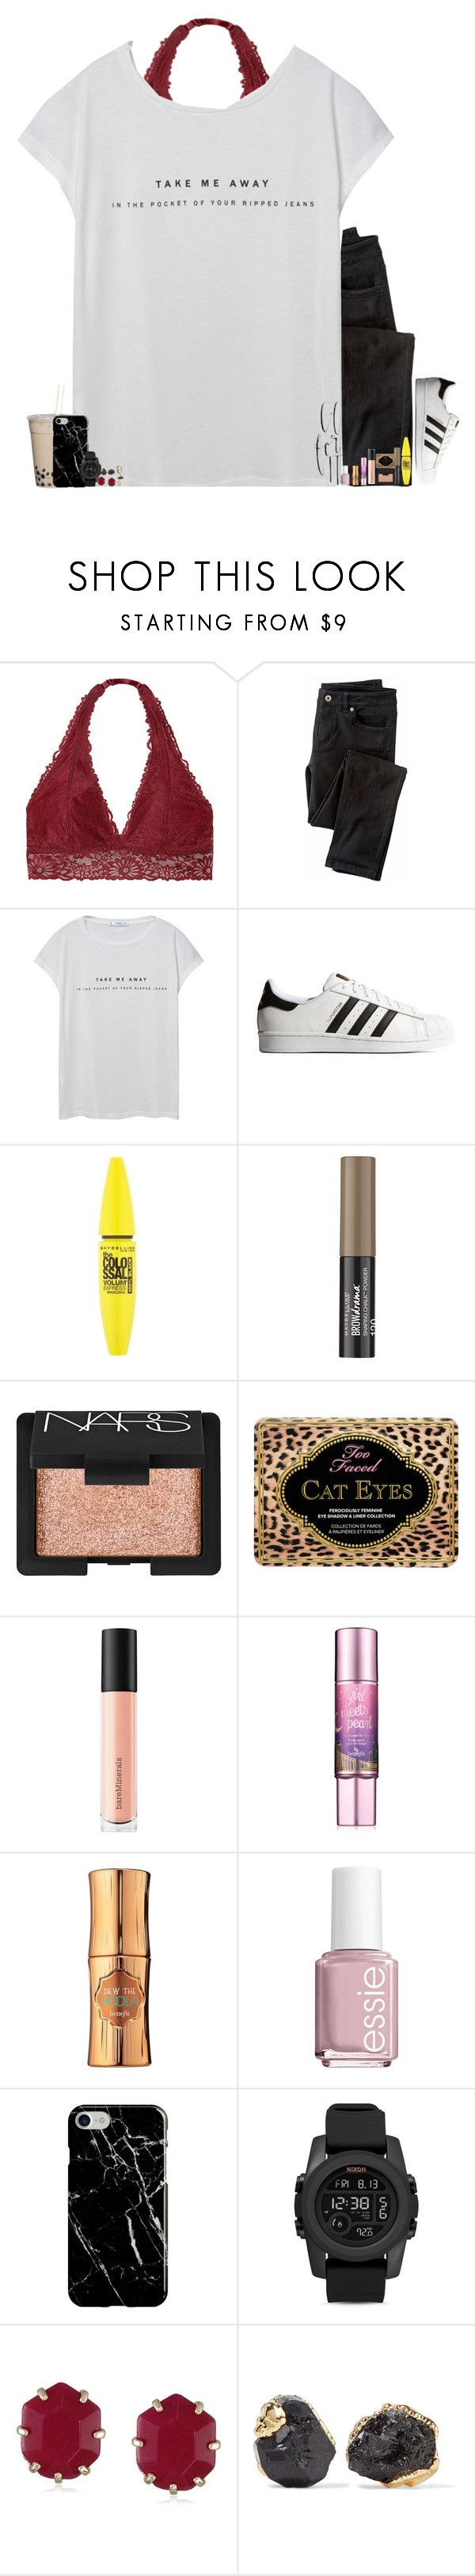 """""""Casually Debating whether or not I should get clothes online or in stores?"""" by carolinefcaron ❤ liked on Polyvore featuring Victoria's Secret, Wrap, MANGO, adidas Originals, Maybelline, NARS Cosmetics, Too Faced Cosmetics, Bare Escentuals, Hoola and Essie"""